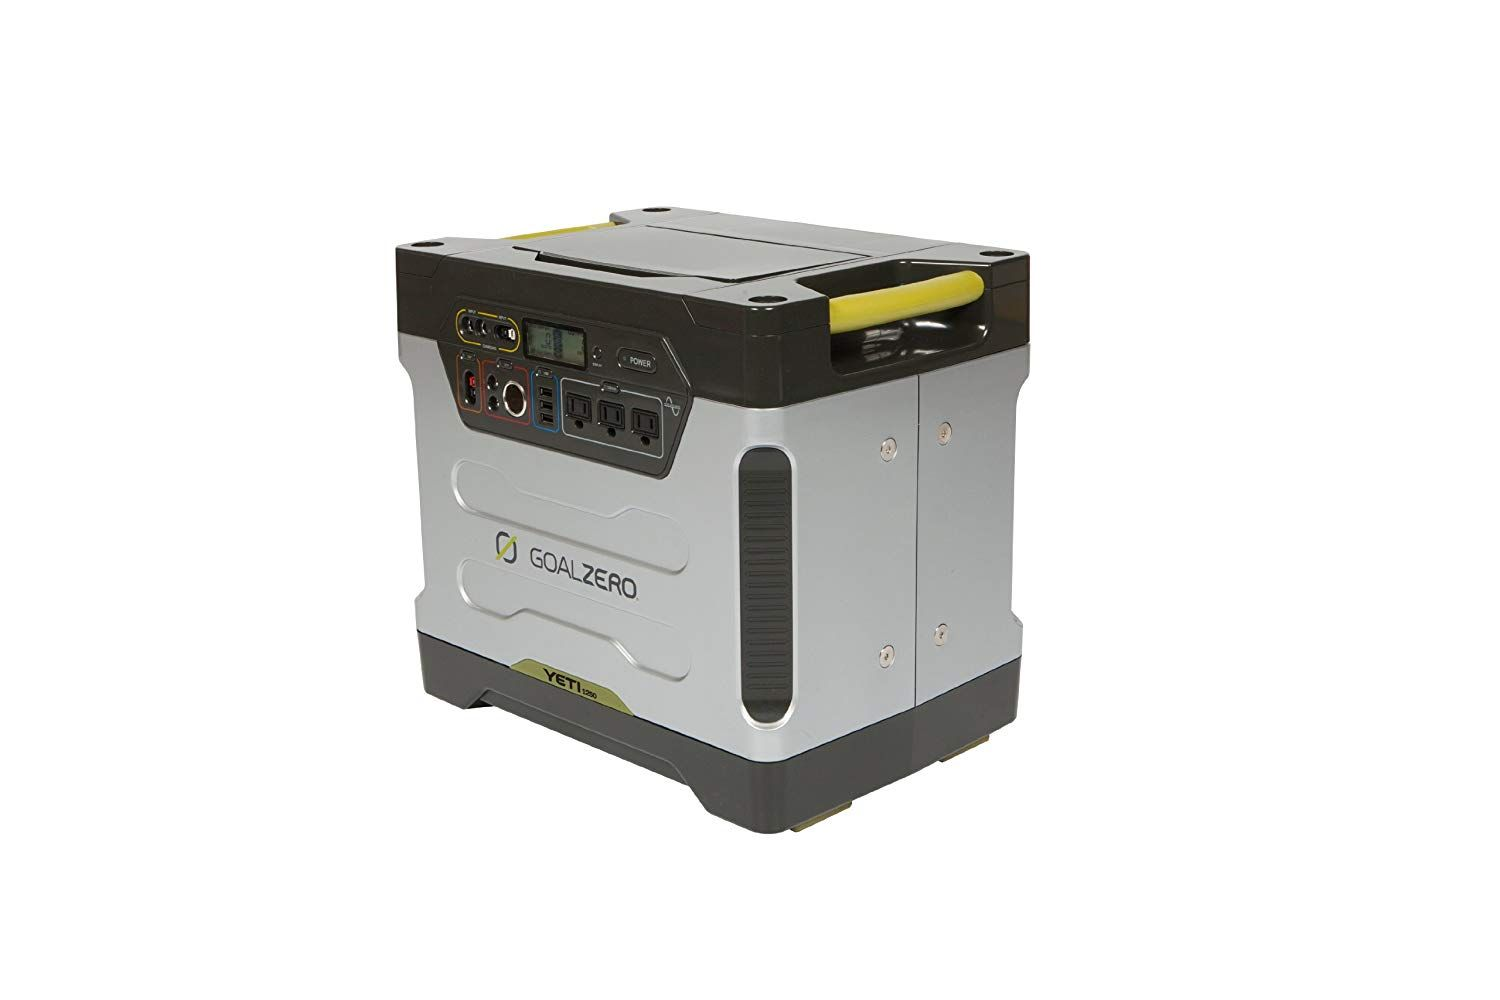 Goal Zero Yeti 1250 Portable Power Station With Roll Cart 1200wh Chainable Home Battery Backup Genera Portable Solar Generator Solar Generator Generator House